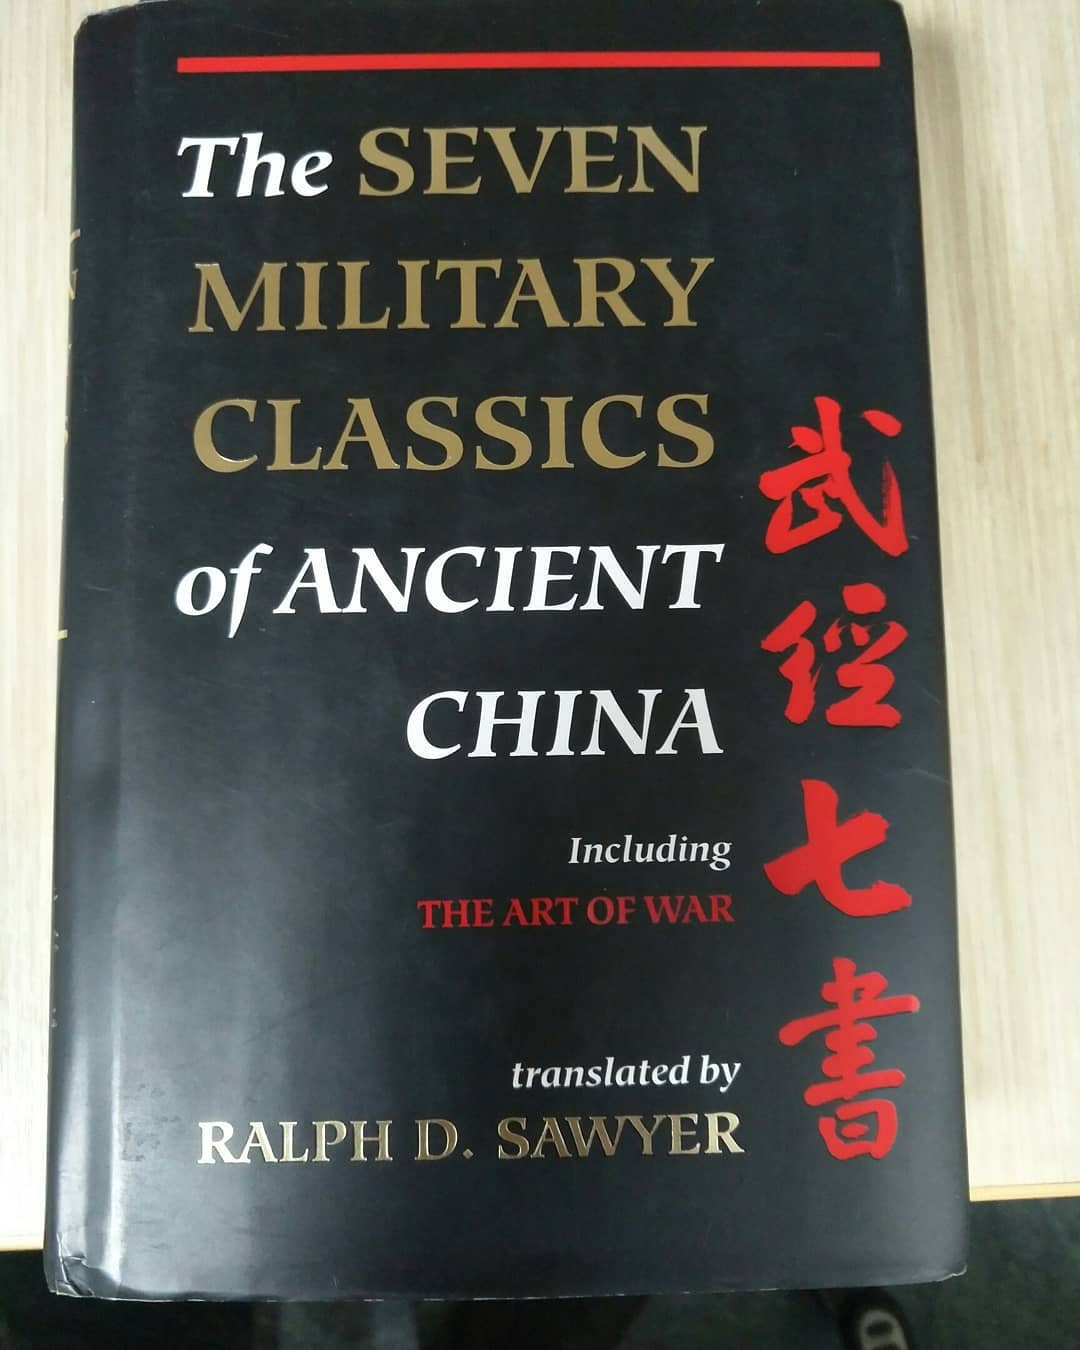 The Seven Military Classics of Ancient China by Ralph D Sawyer